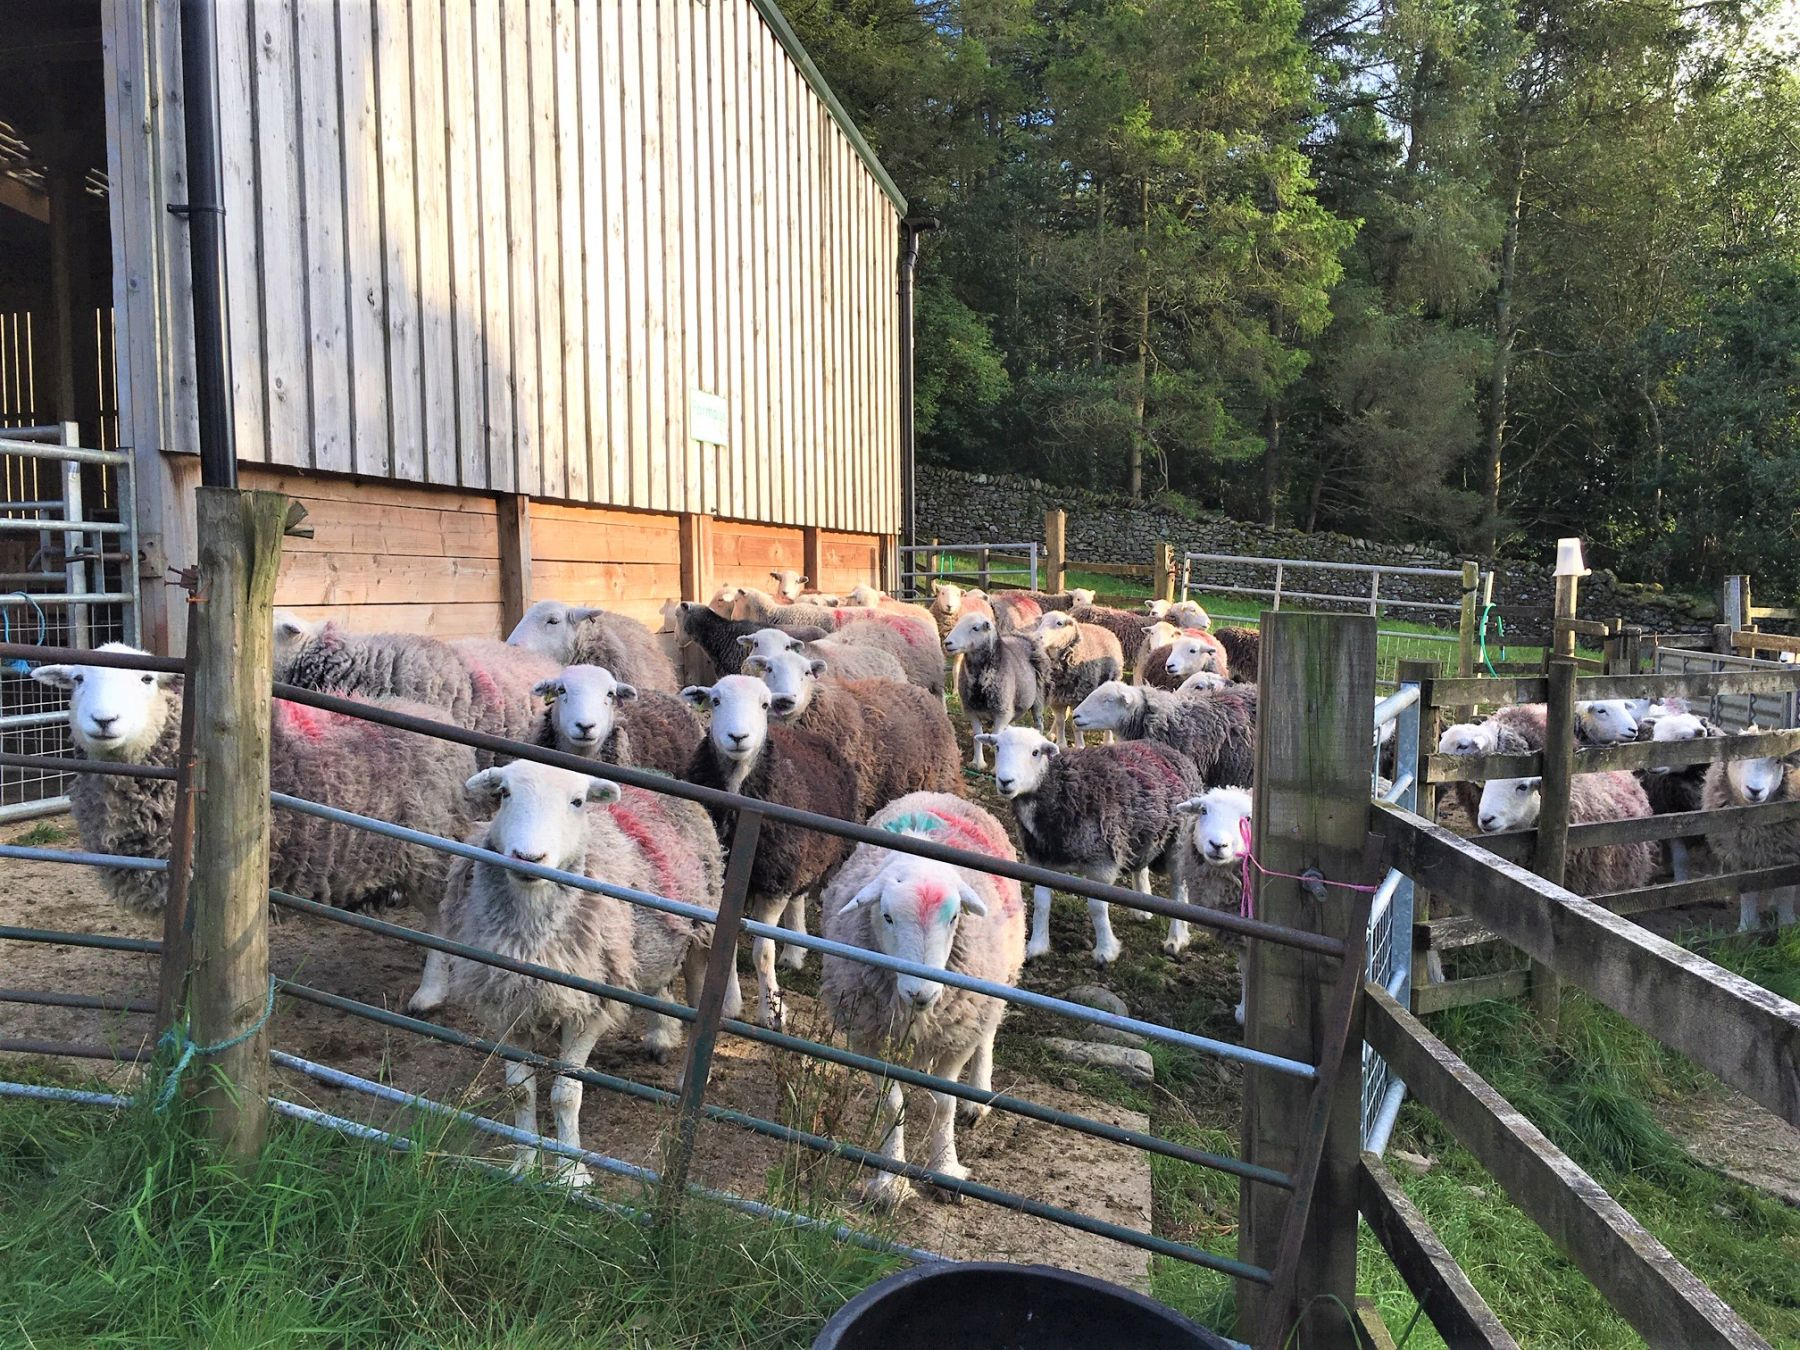 Herdwick sheep in pen in evening sunlight waiting for their turn to be shorn